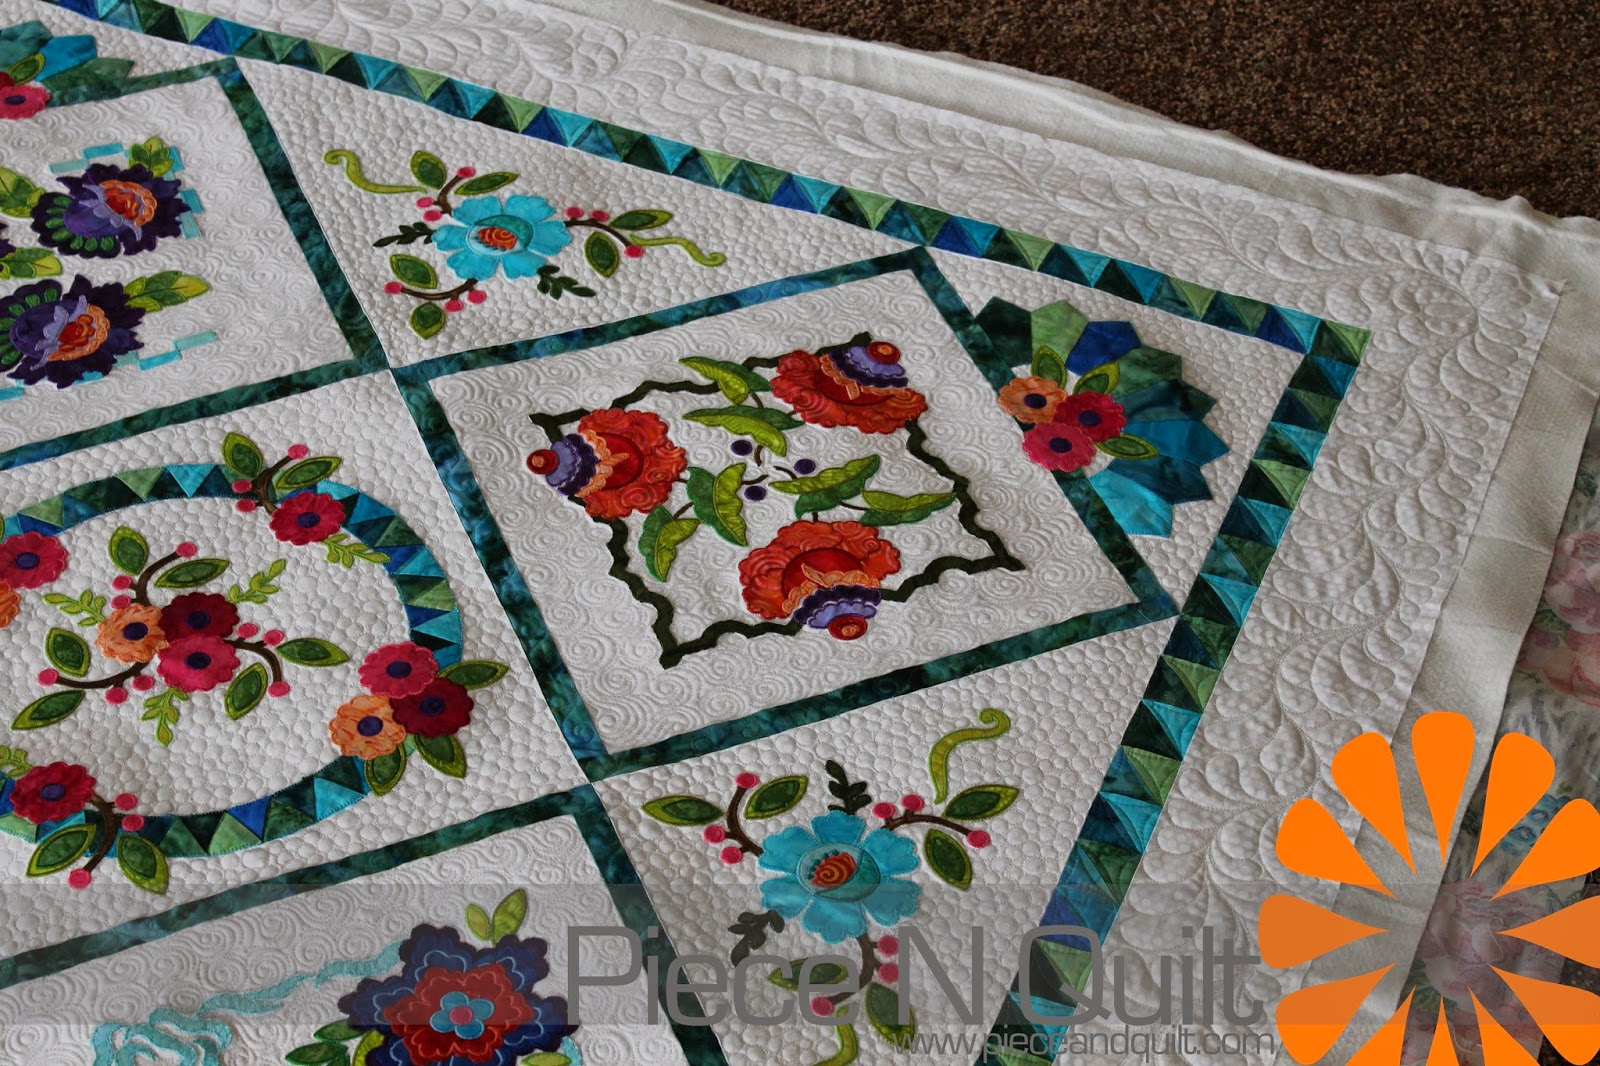 Piece N Quilt May 2014